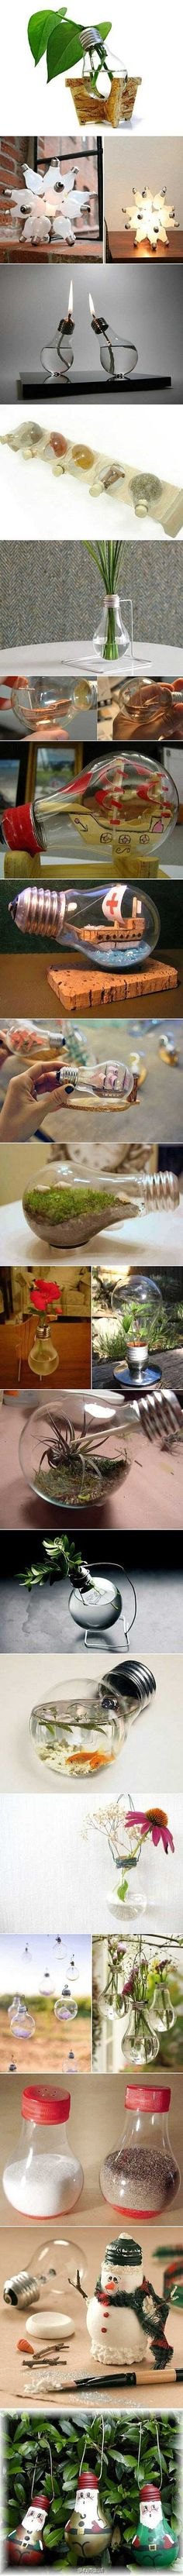 Reuse light bulbs to make house hold items.Cool!